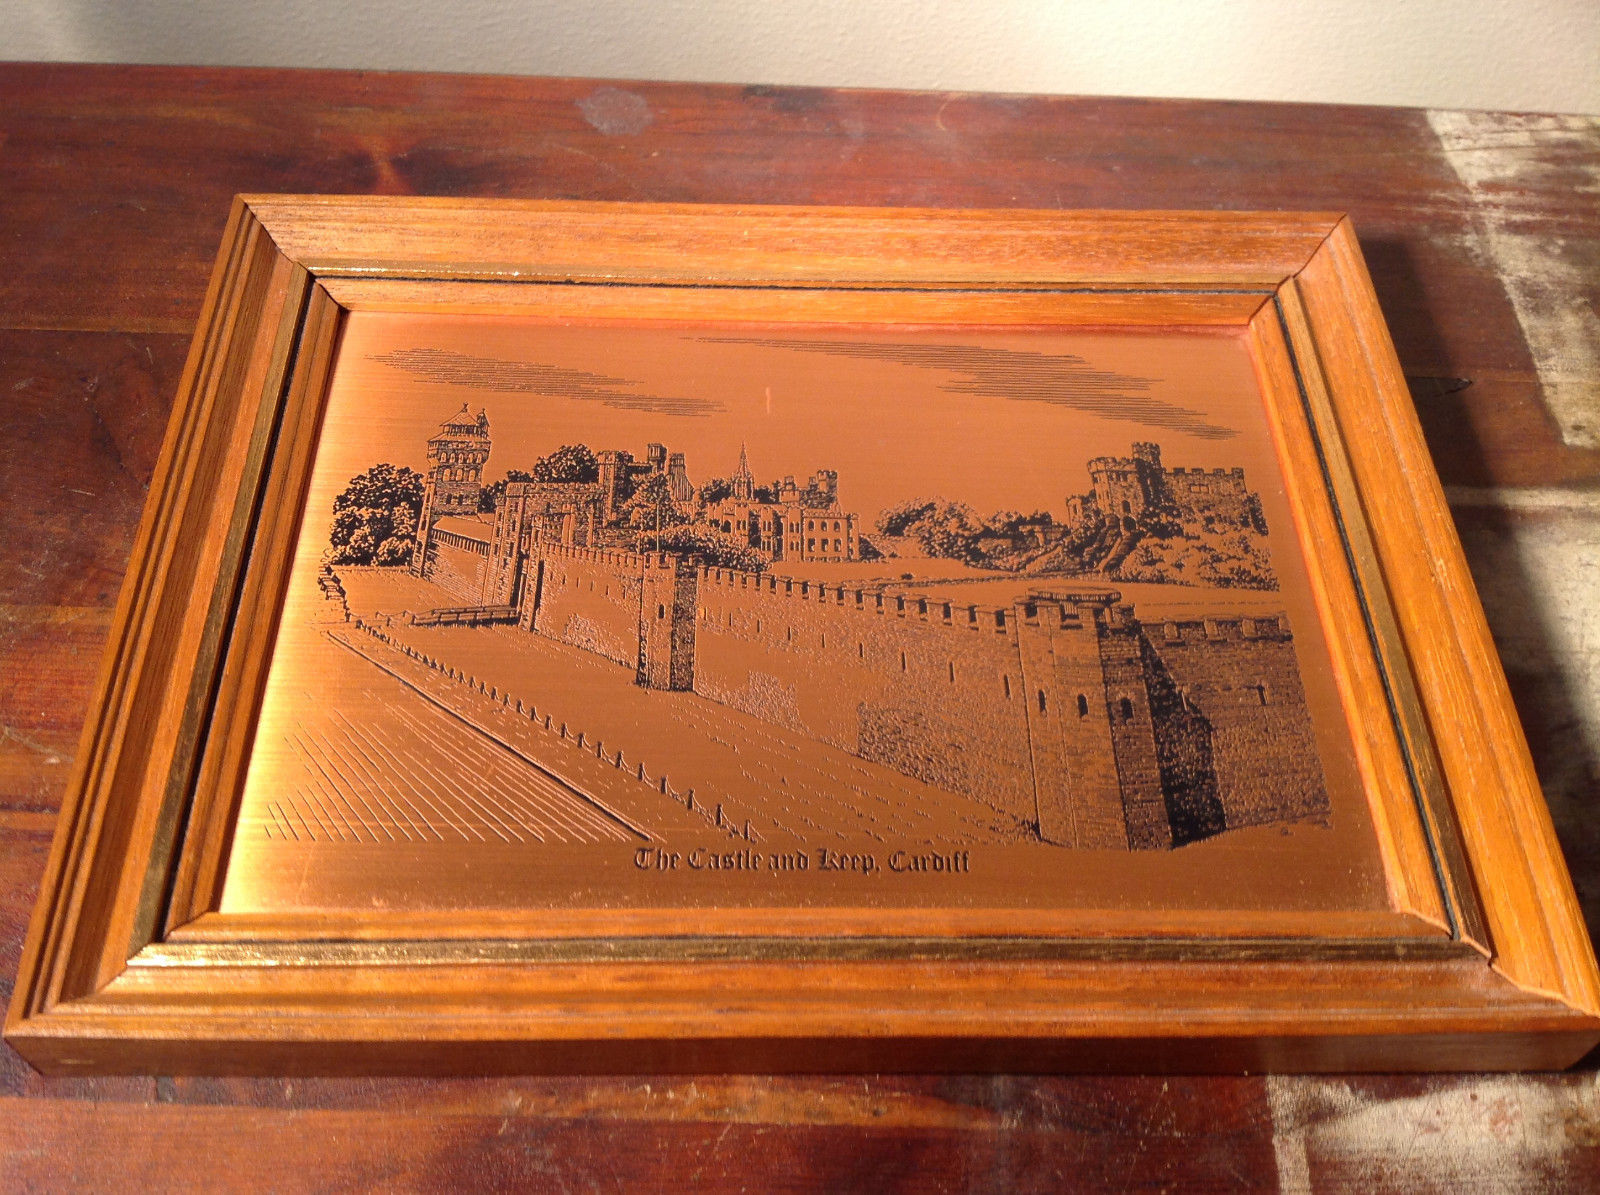 The Castle and Keep Cardiff Copper Etching Wall Decoration Made in England